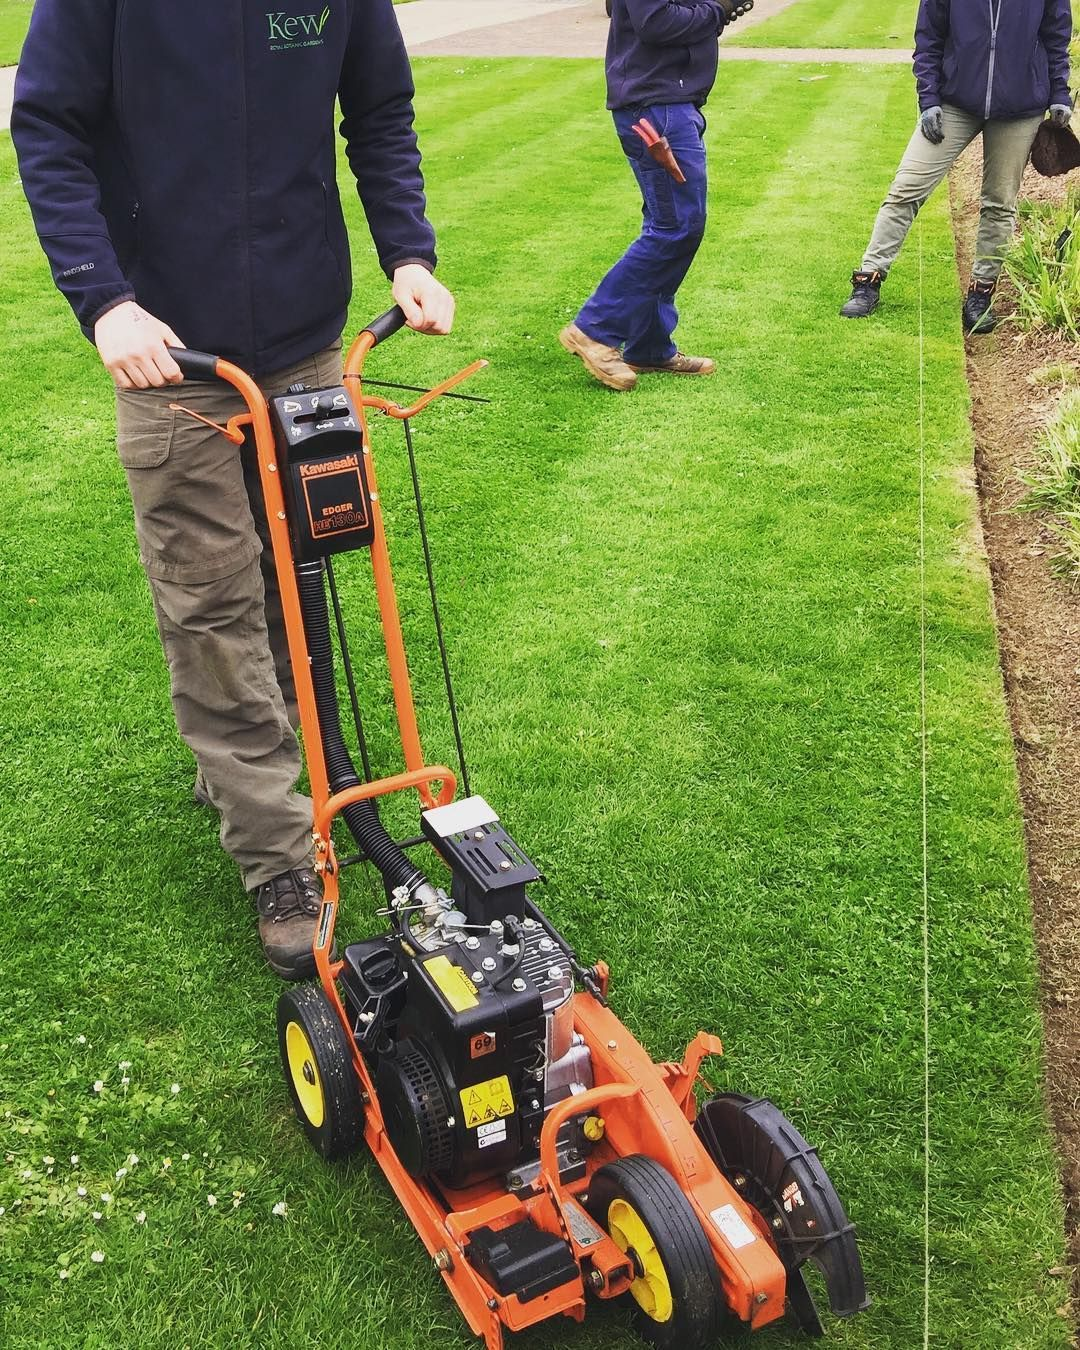 5 Of The Best Lawn Edgers For Various Gardens Sizes Lawn Edger Lawn